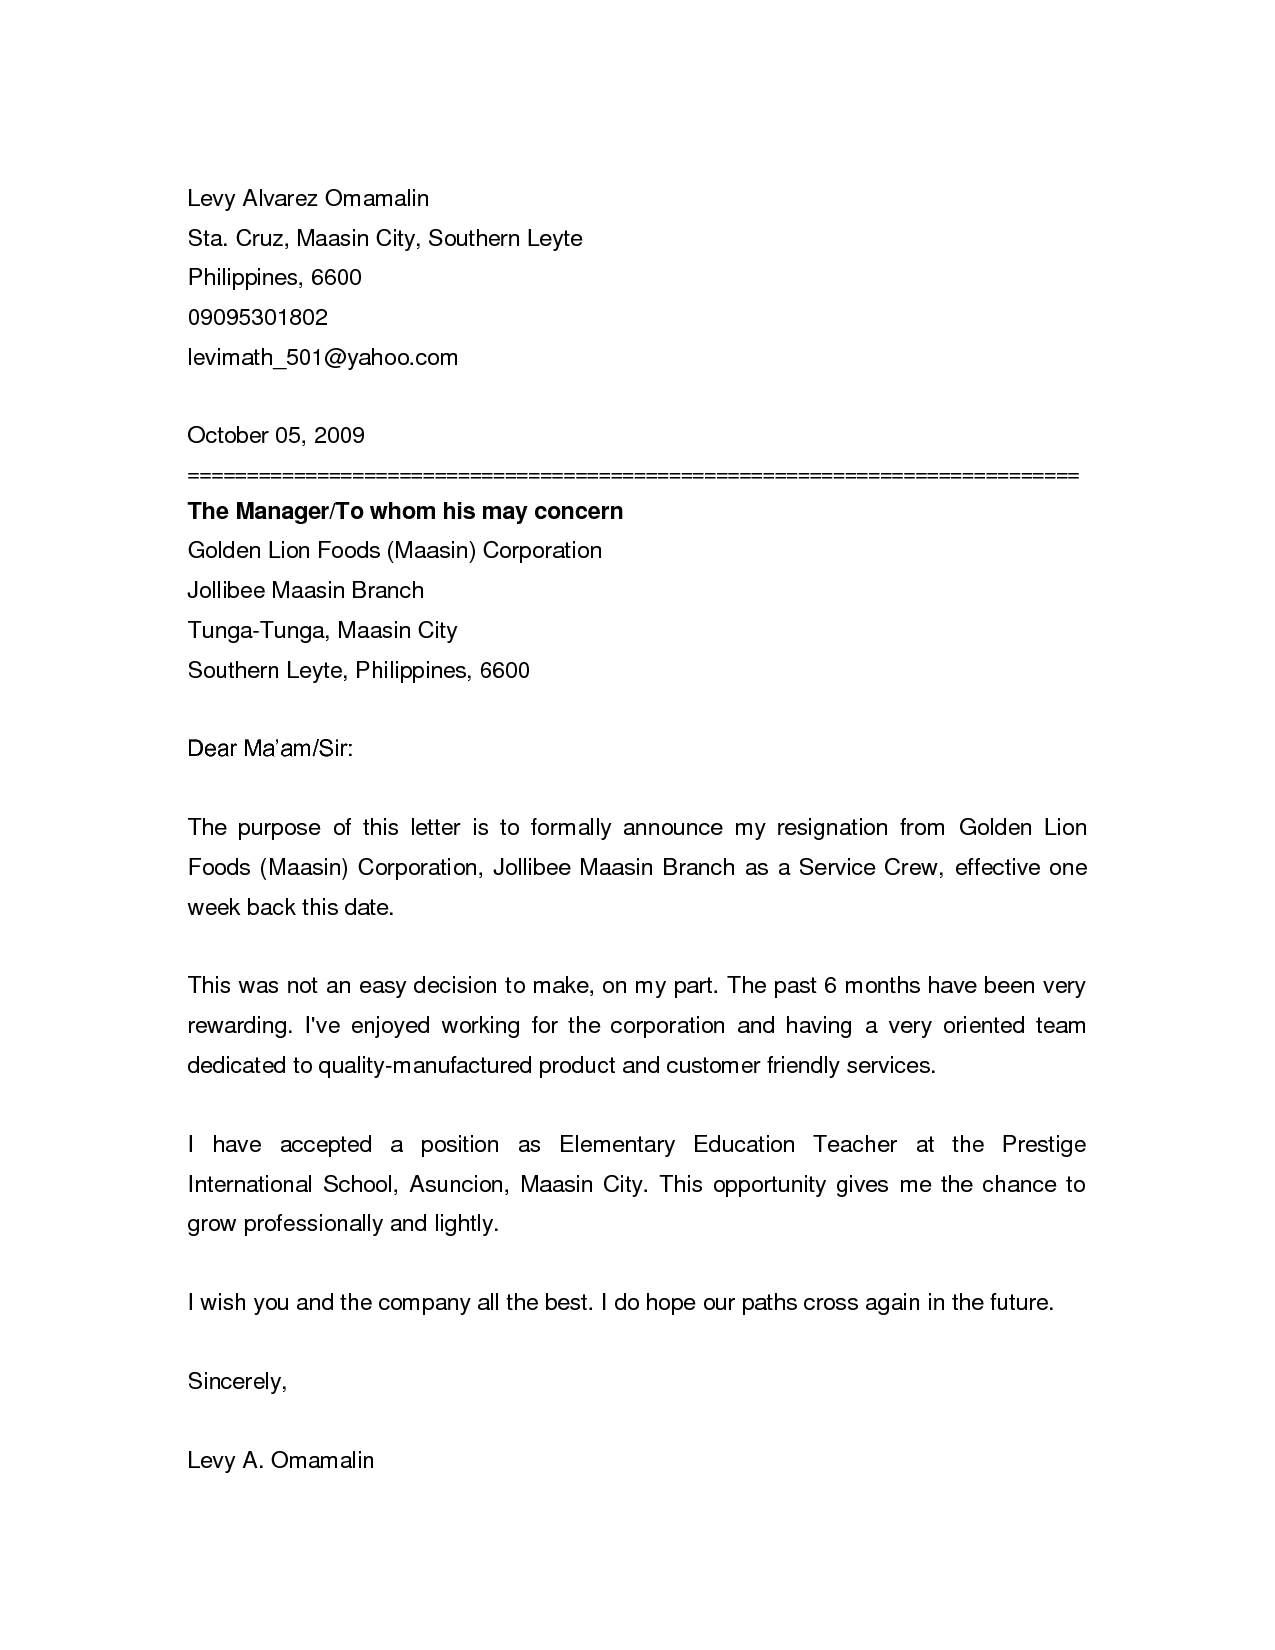 resumes samples for teachers in resumecareer resignation announcement letter this resignation announcement letter to let co workers know that you are resigning from your job